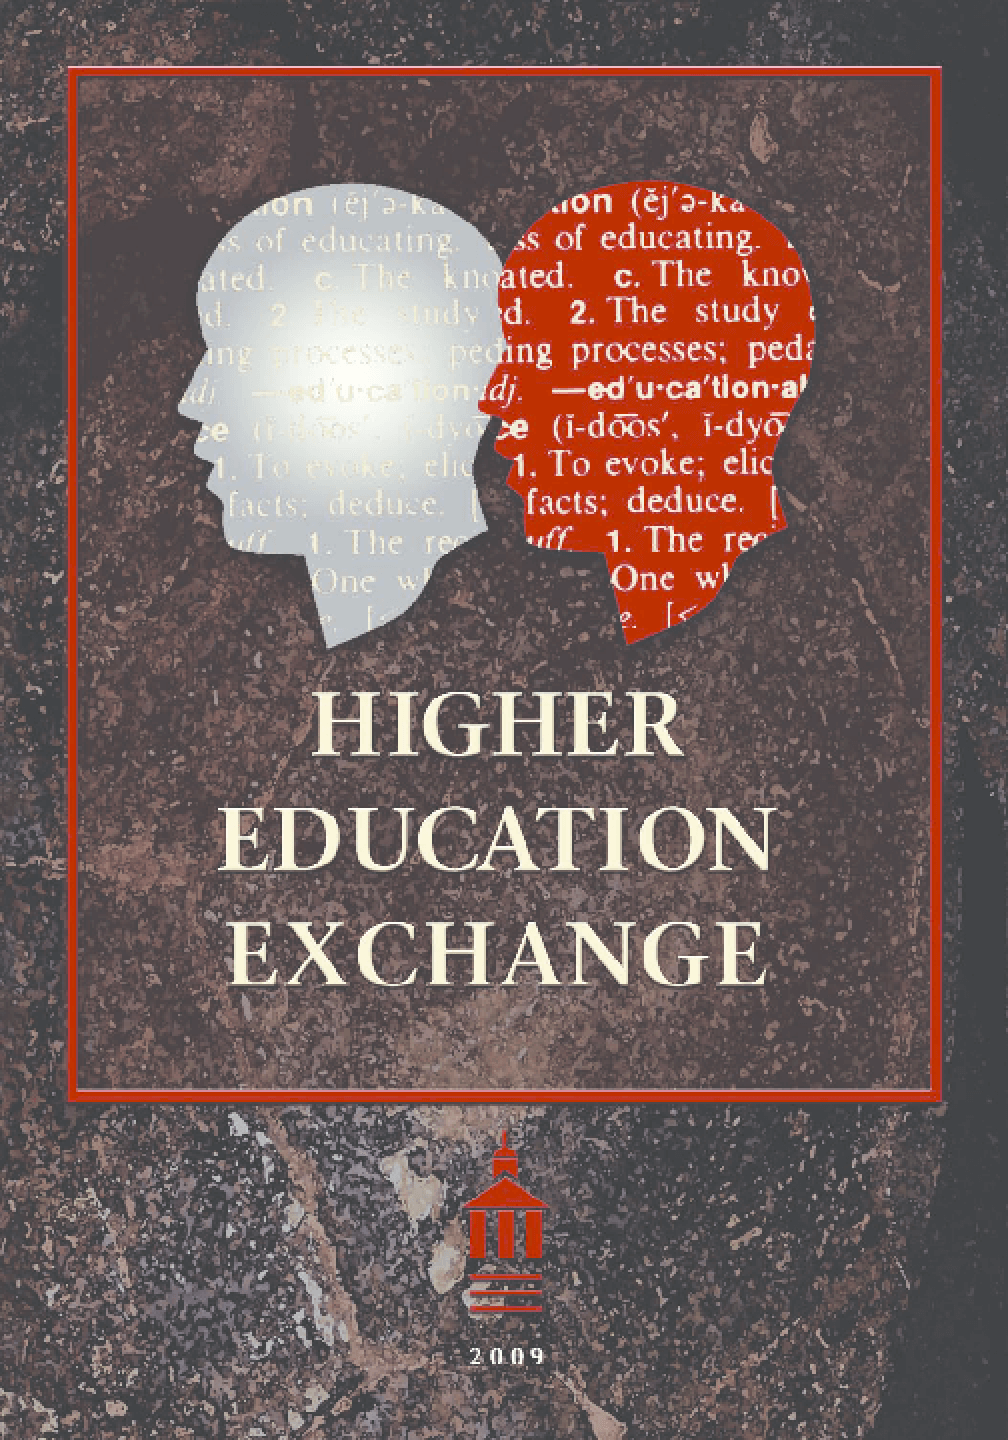 Higher Education Exchange: 2009